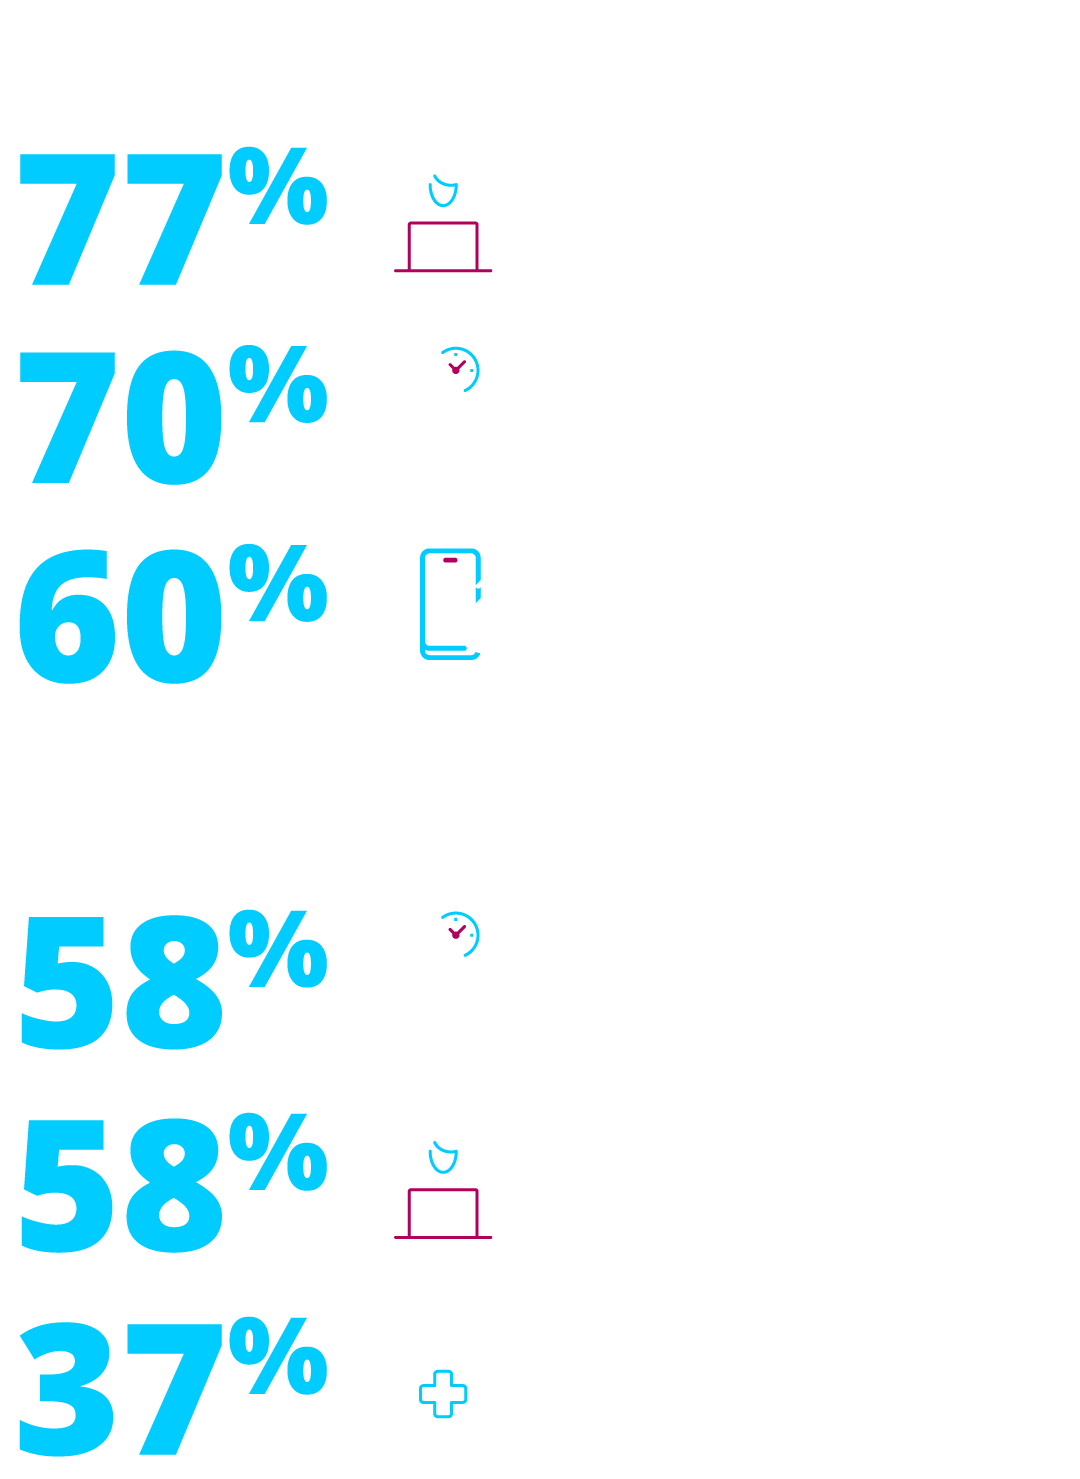 received benefits